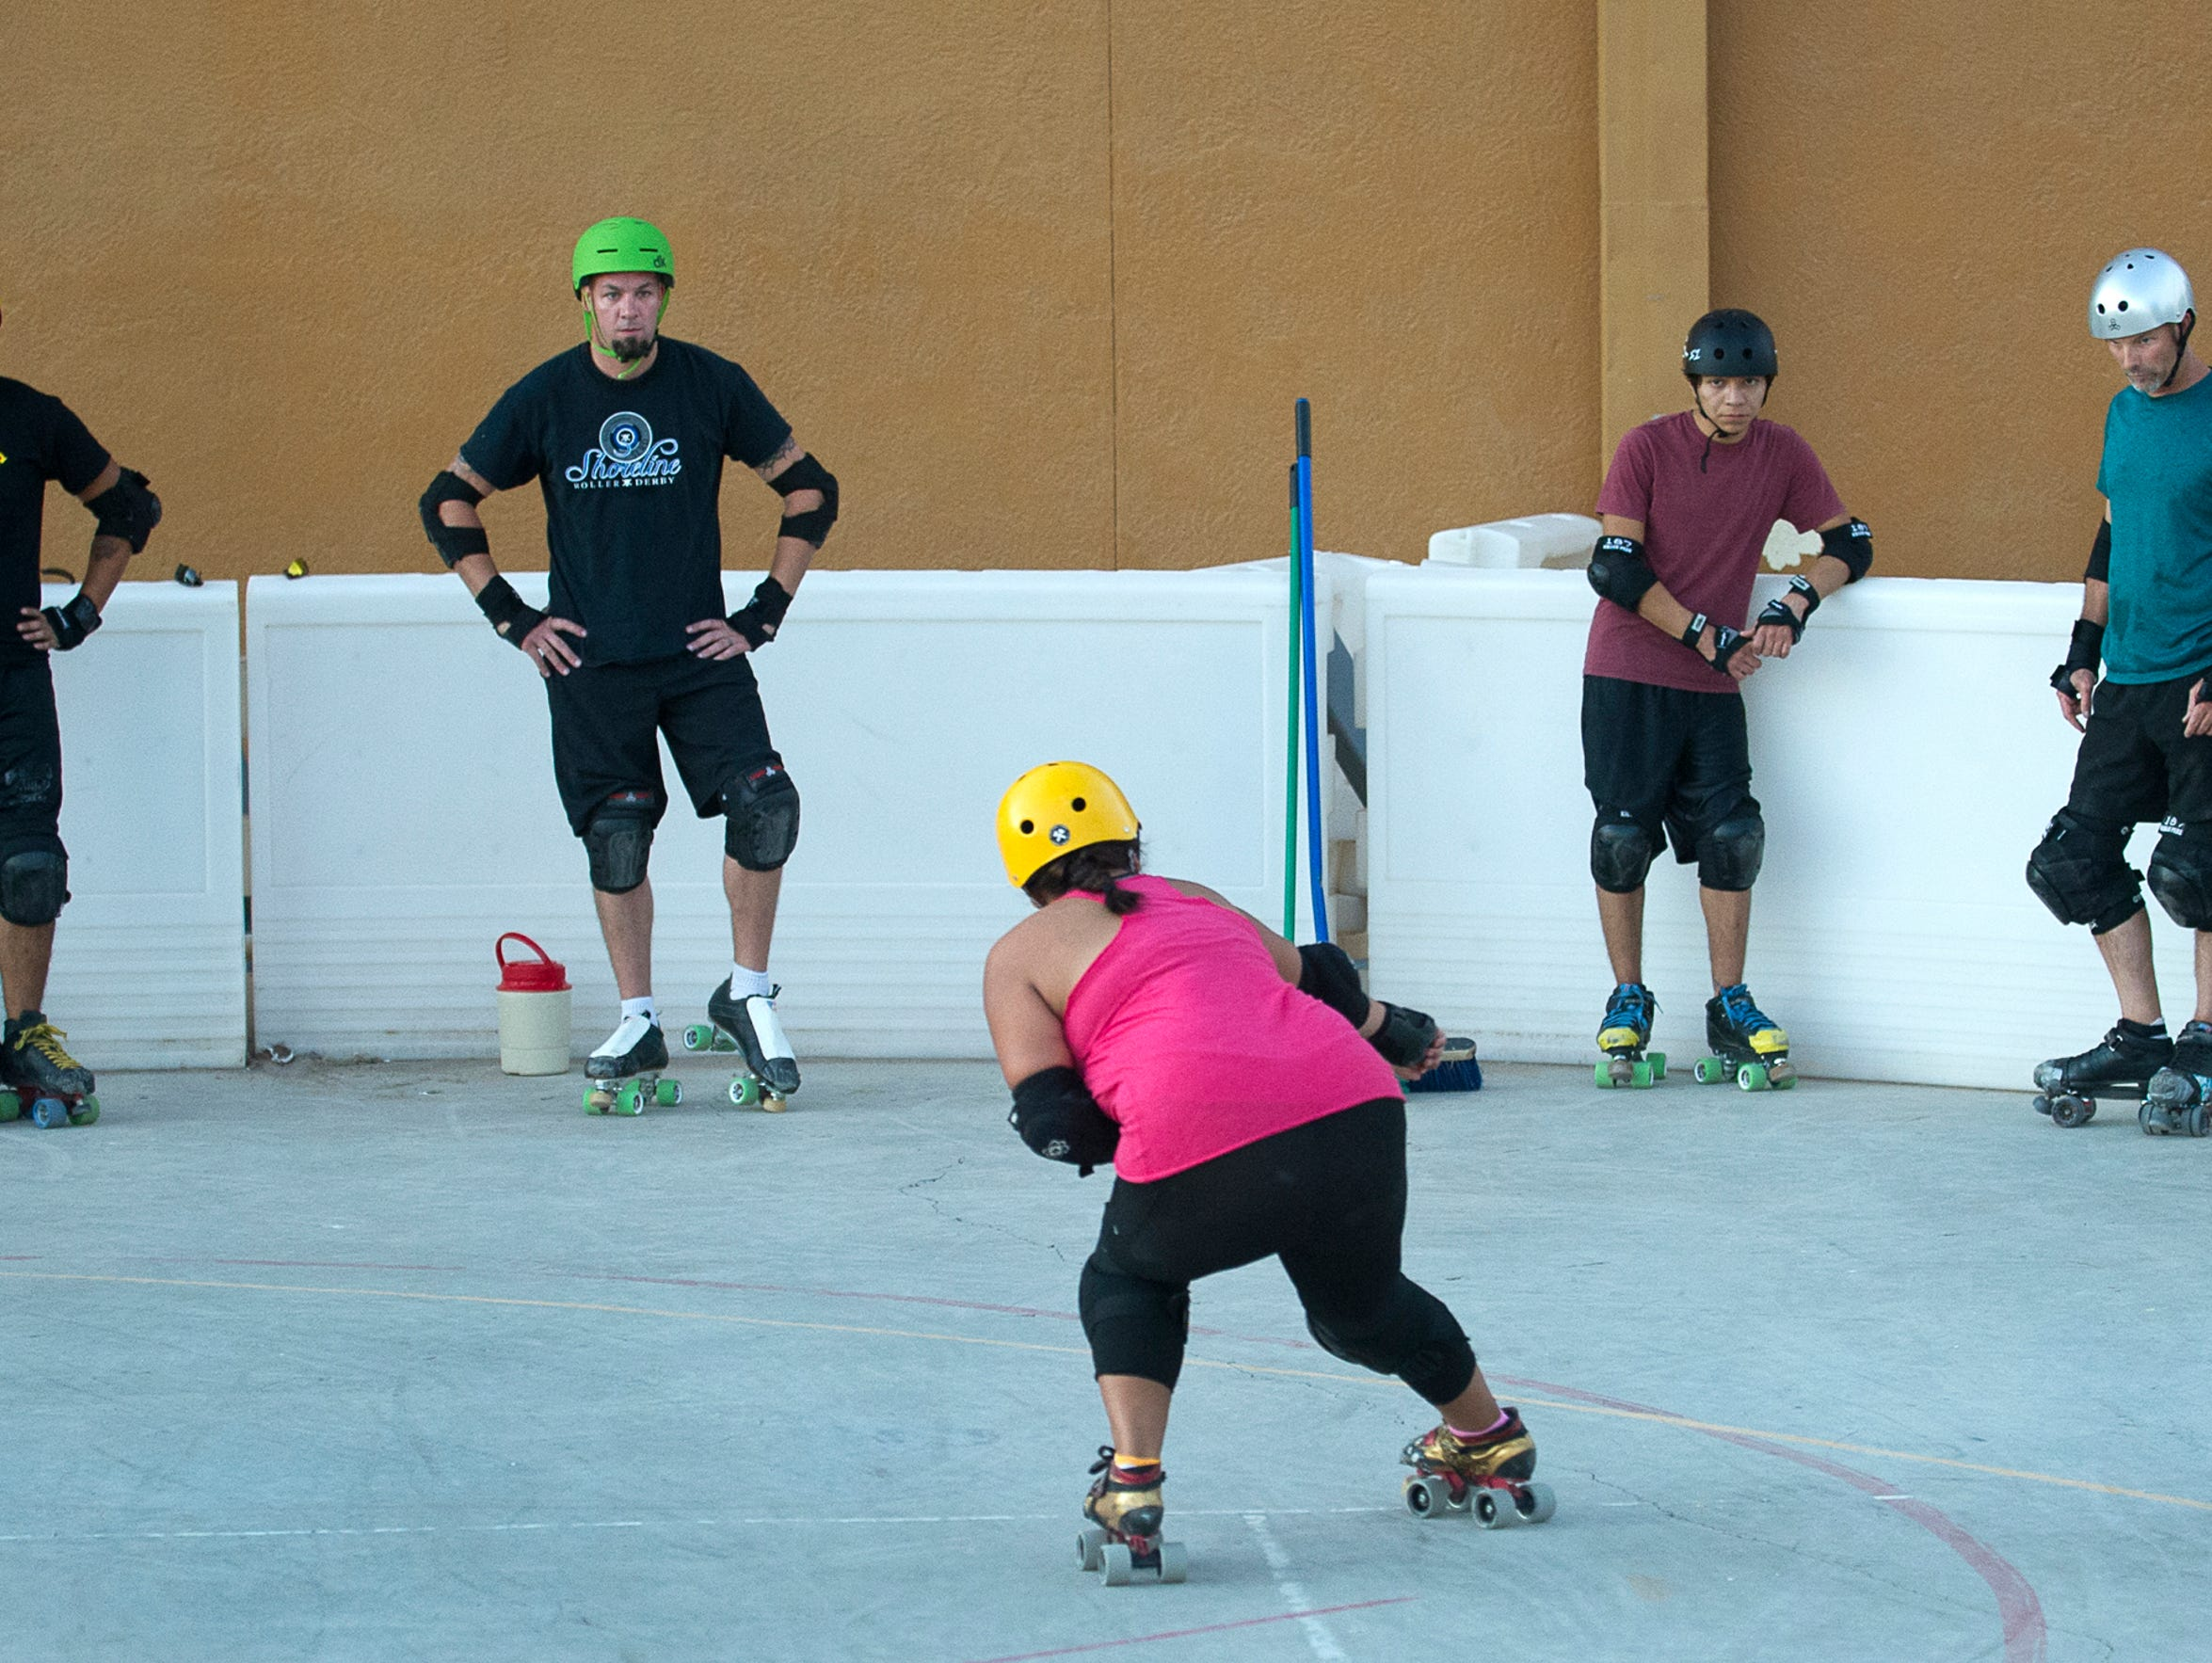 Members of the New Mexico Men's Roller Derby Team watch